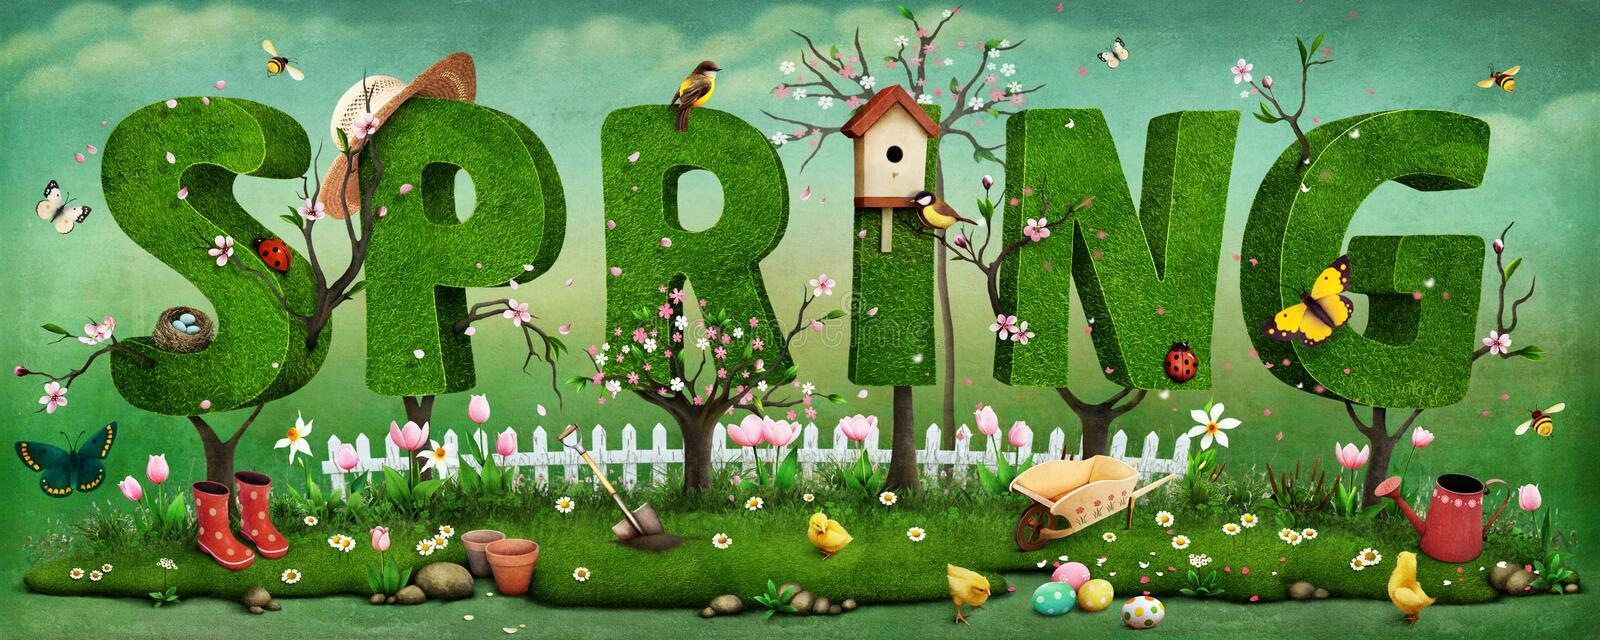 Spring. Beautiful festive spring illustration on Mother's Day and Easter with trees in form of letter. Computer graphics